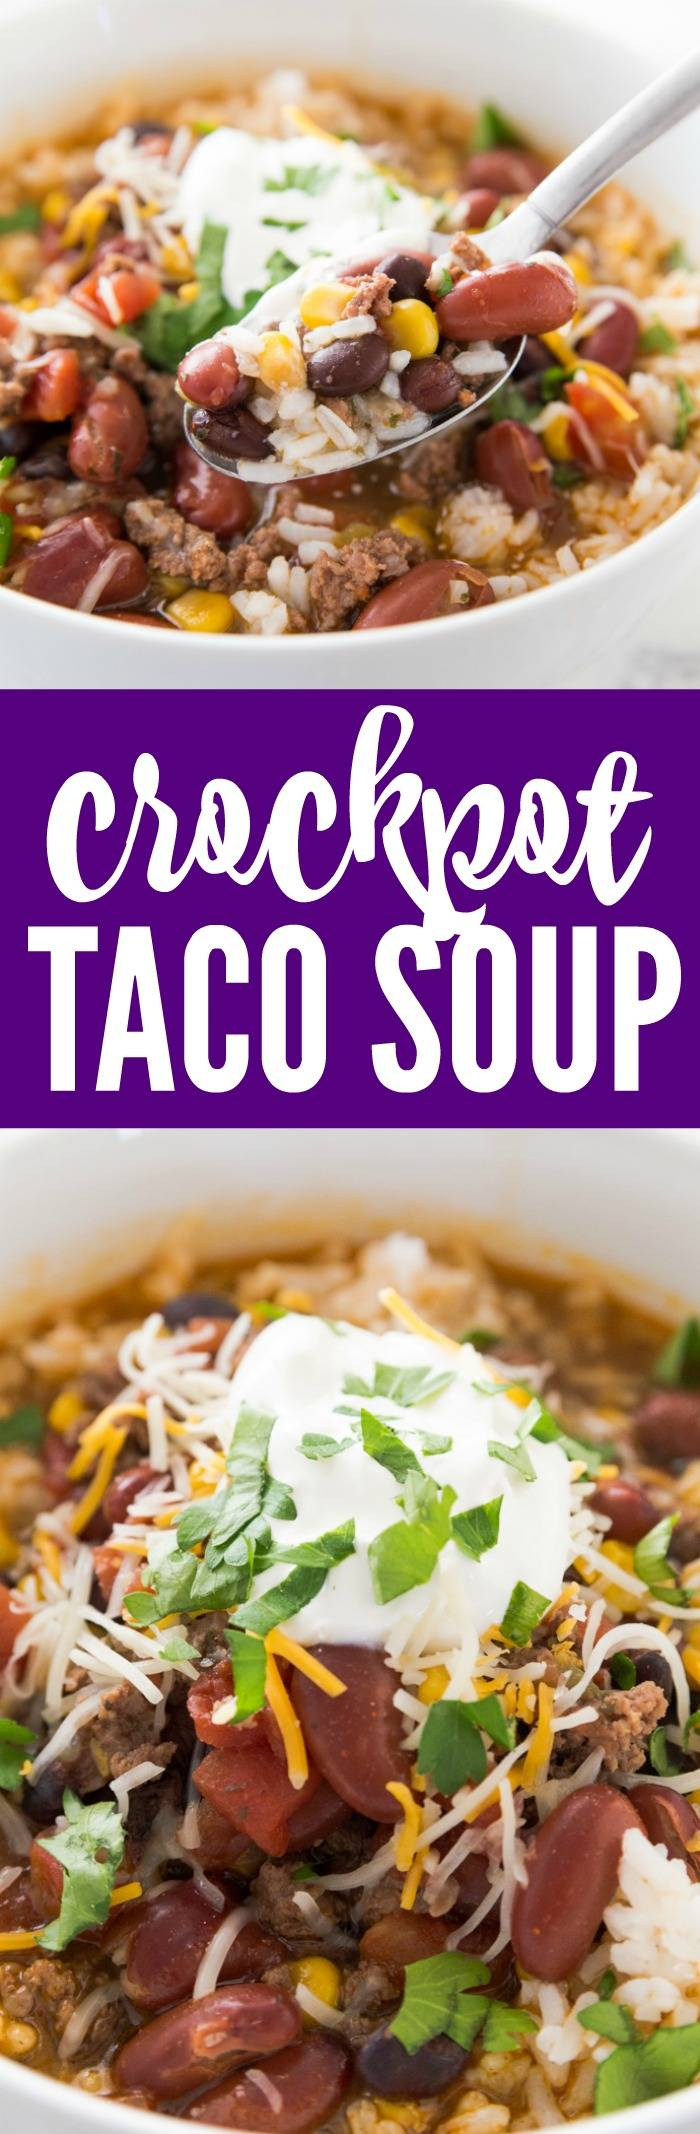 Easy Crockpot Taco Soup Recipe! This 7 Can Slow Cooker Dump Soup is an easy Weekly Dinner Plan idea or freezer meal for kids or a crowd everyone will LOVE!